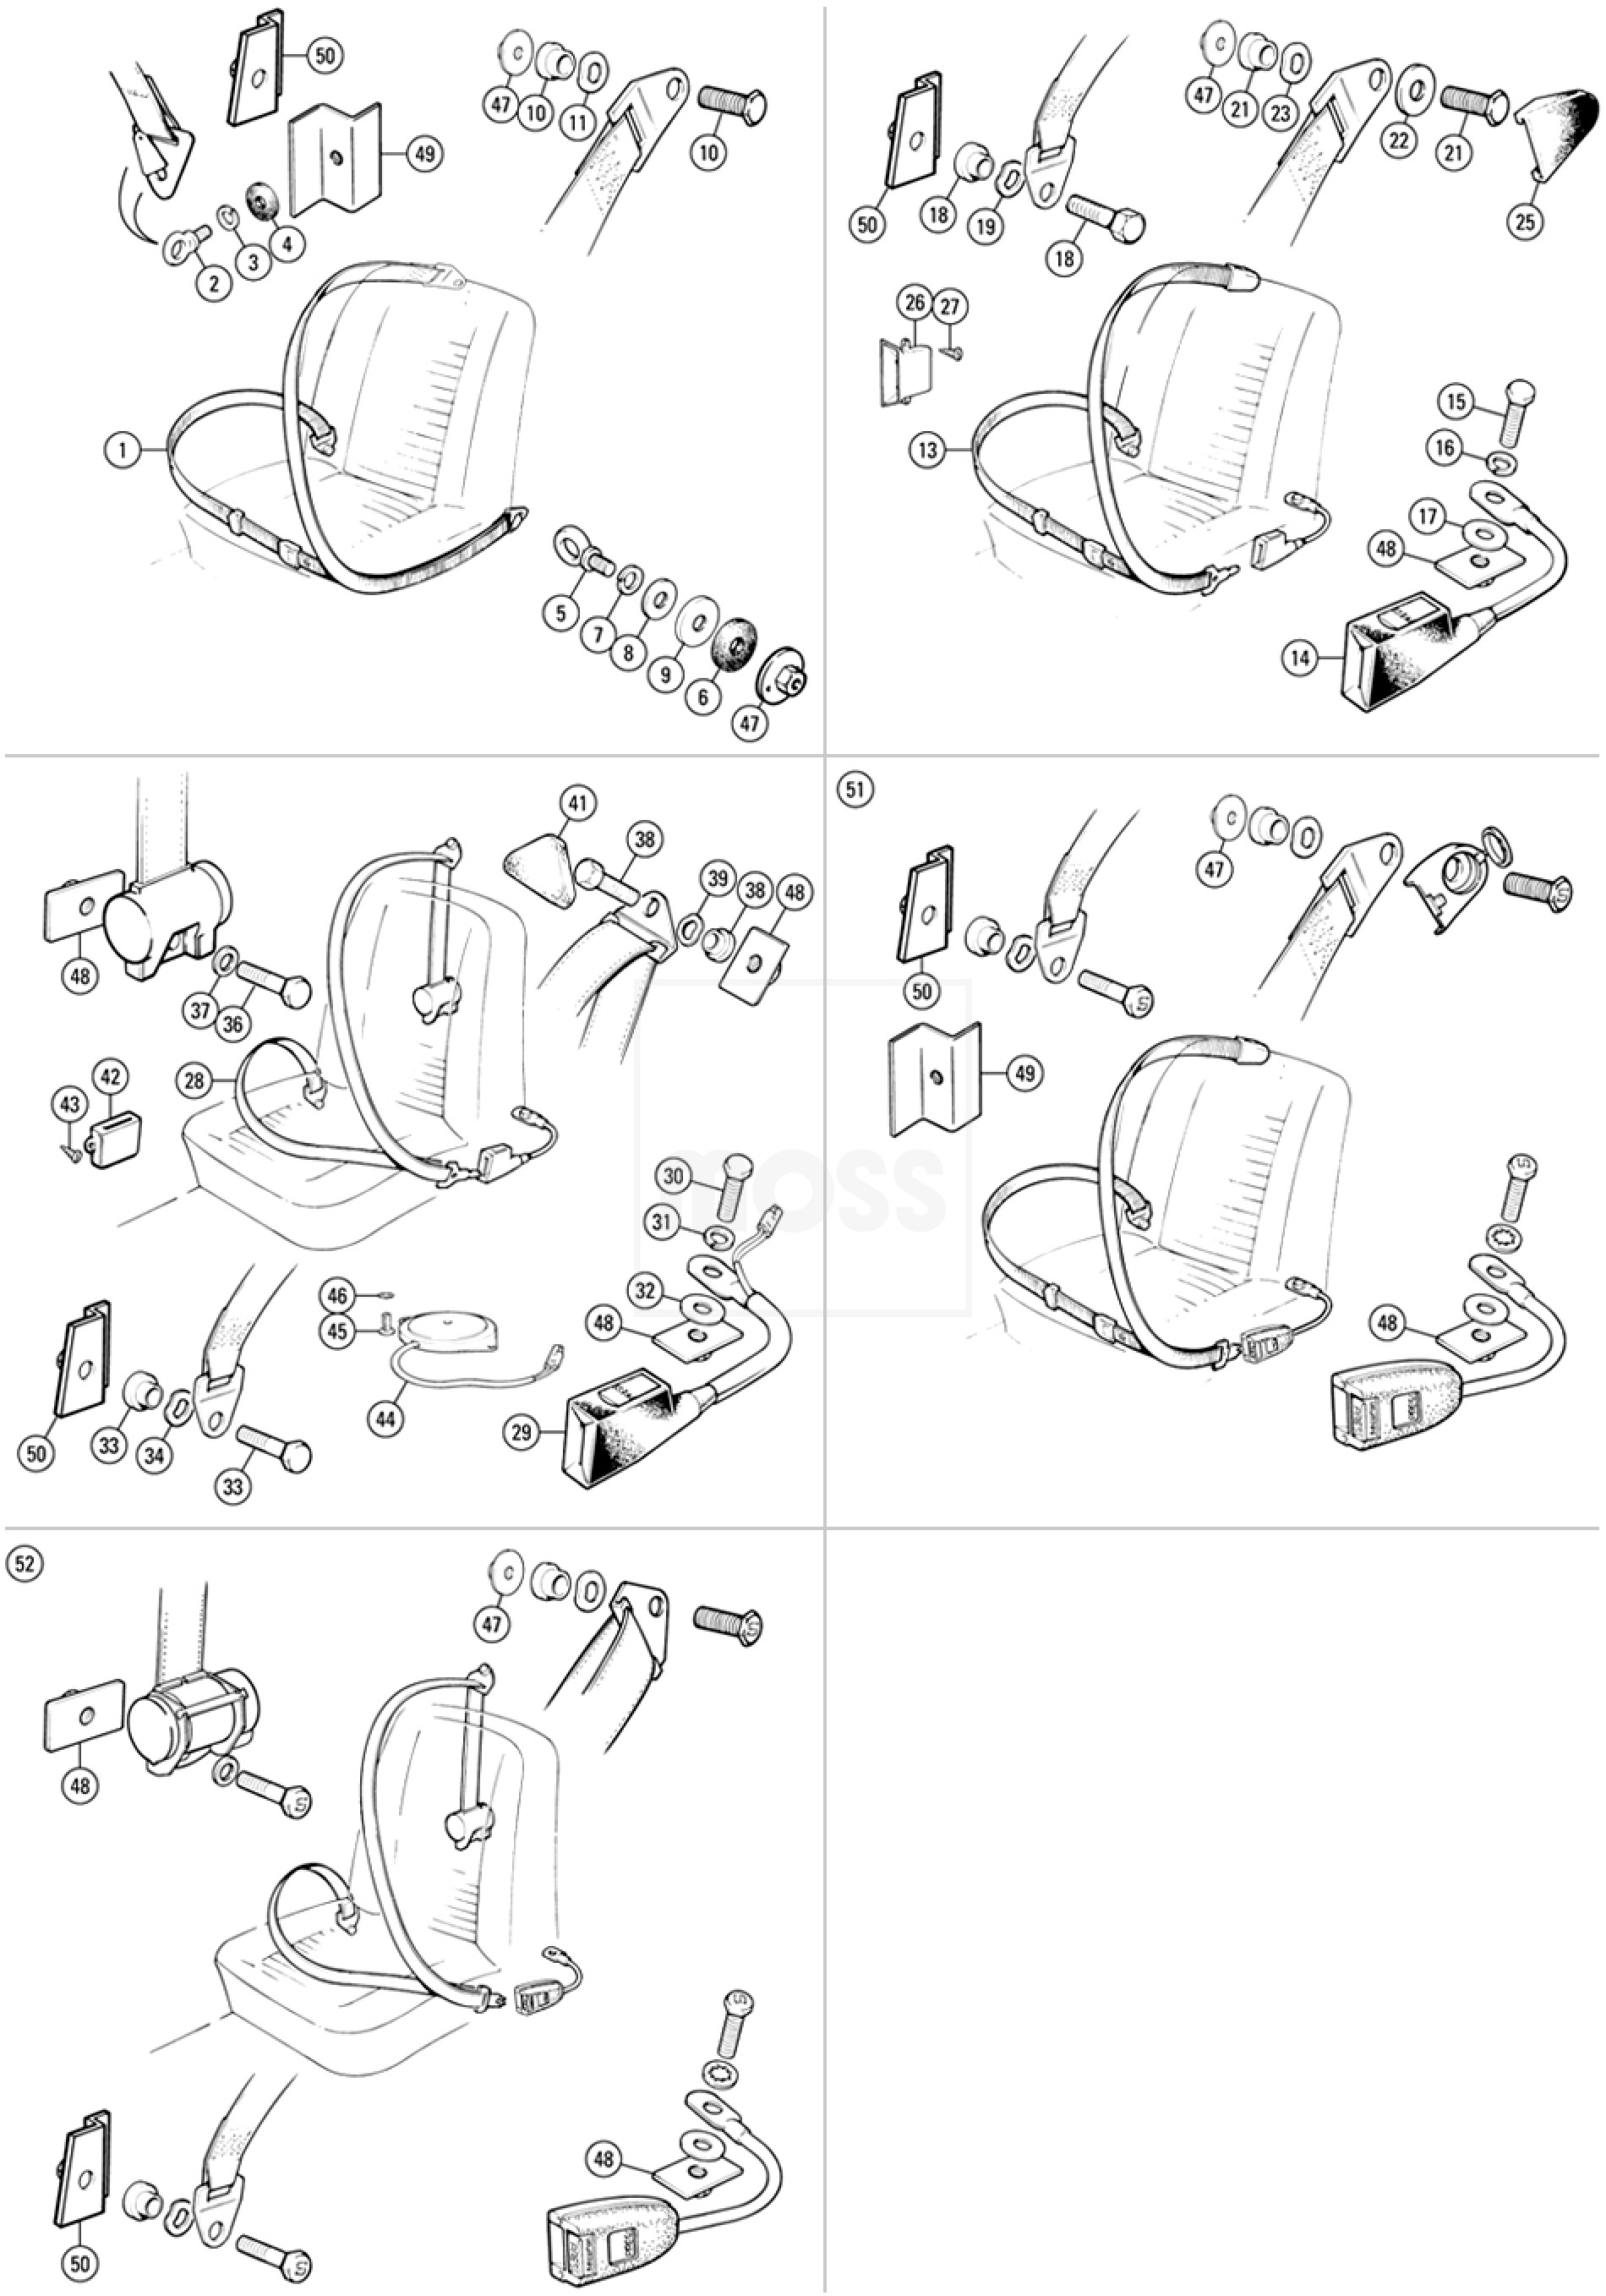 Model Guide furthermore 1940 Cadillac Wiring Diagram further Car Vin Number Location moreover Gm Engine Vin Numbers Chevrolet besides Chevy P30 Vin Number Location. on 1940 chevy vin number location